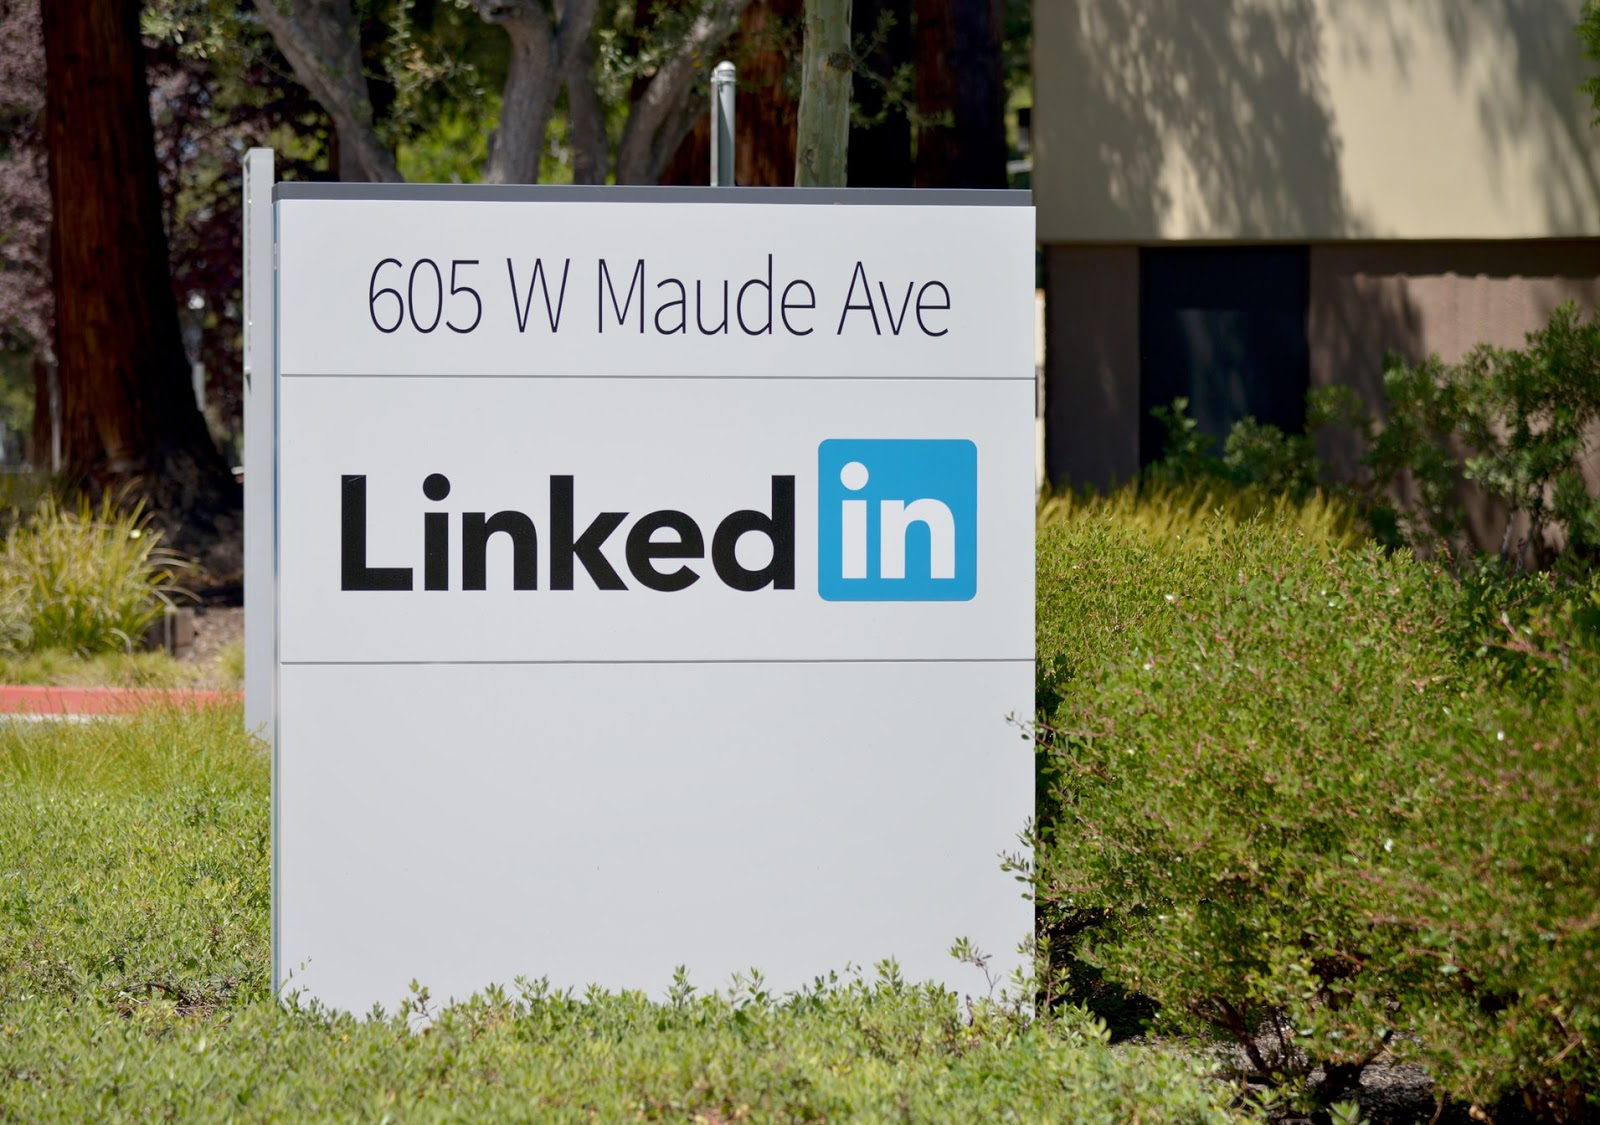 Microsoft's Q4 Report Shows That the Revenue of LinkedIn Increased 10 Percent, and Sessions Grew 27 Percent